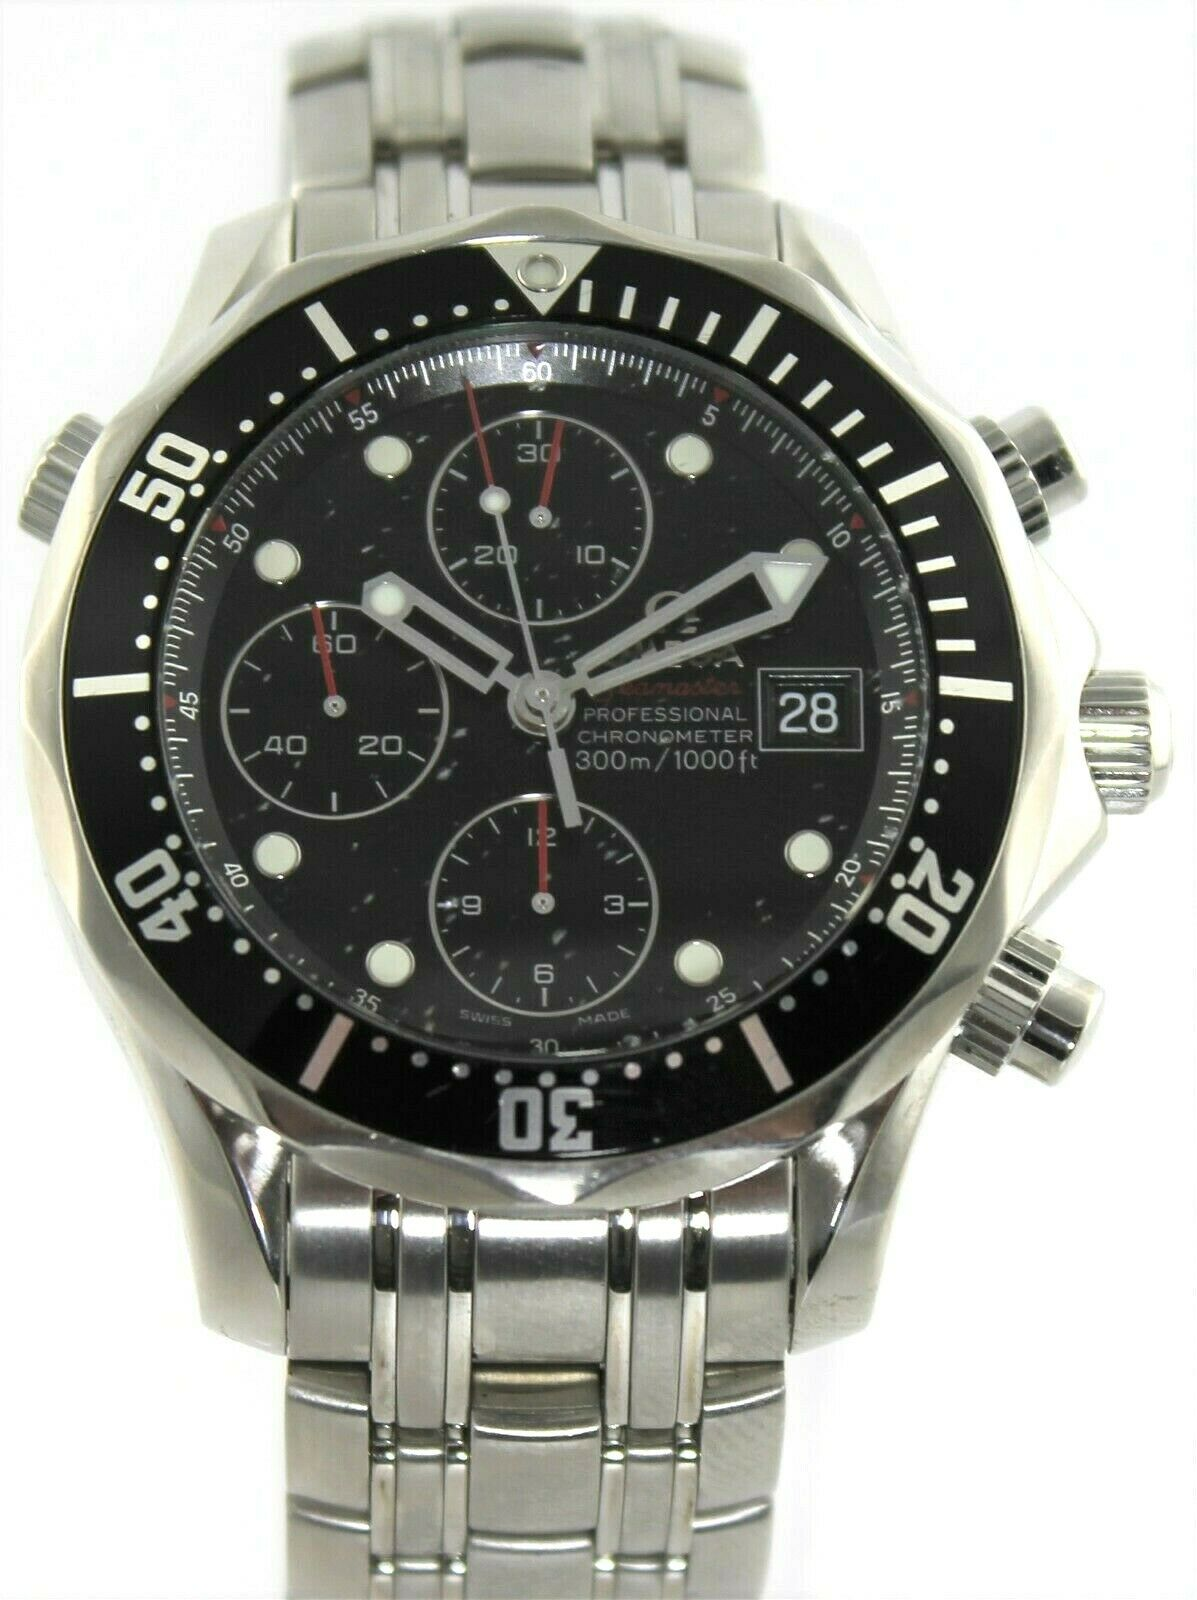 OMEGA SEAMASTER 213.30.42.40.01.001 BLACK AUTOMATIC CHRONOGRAPH MENS SWISS WATCH